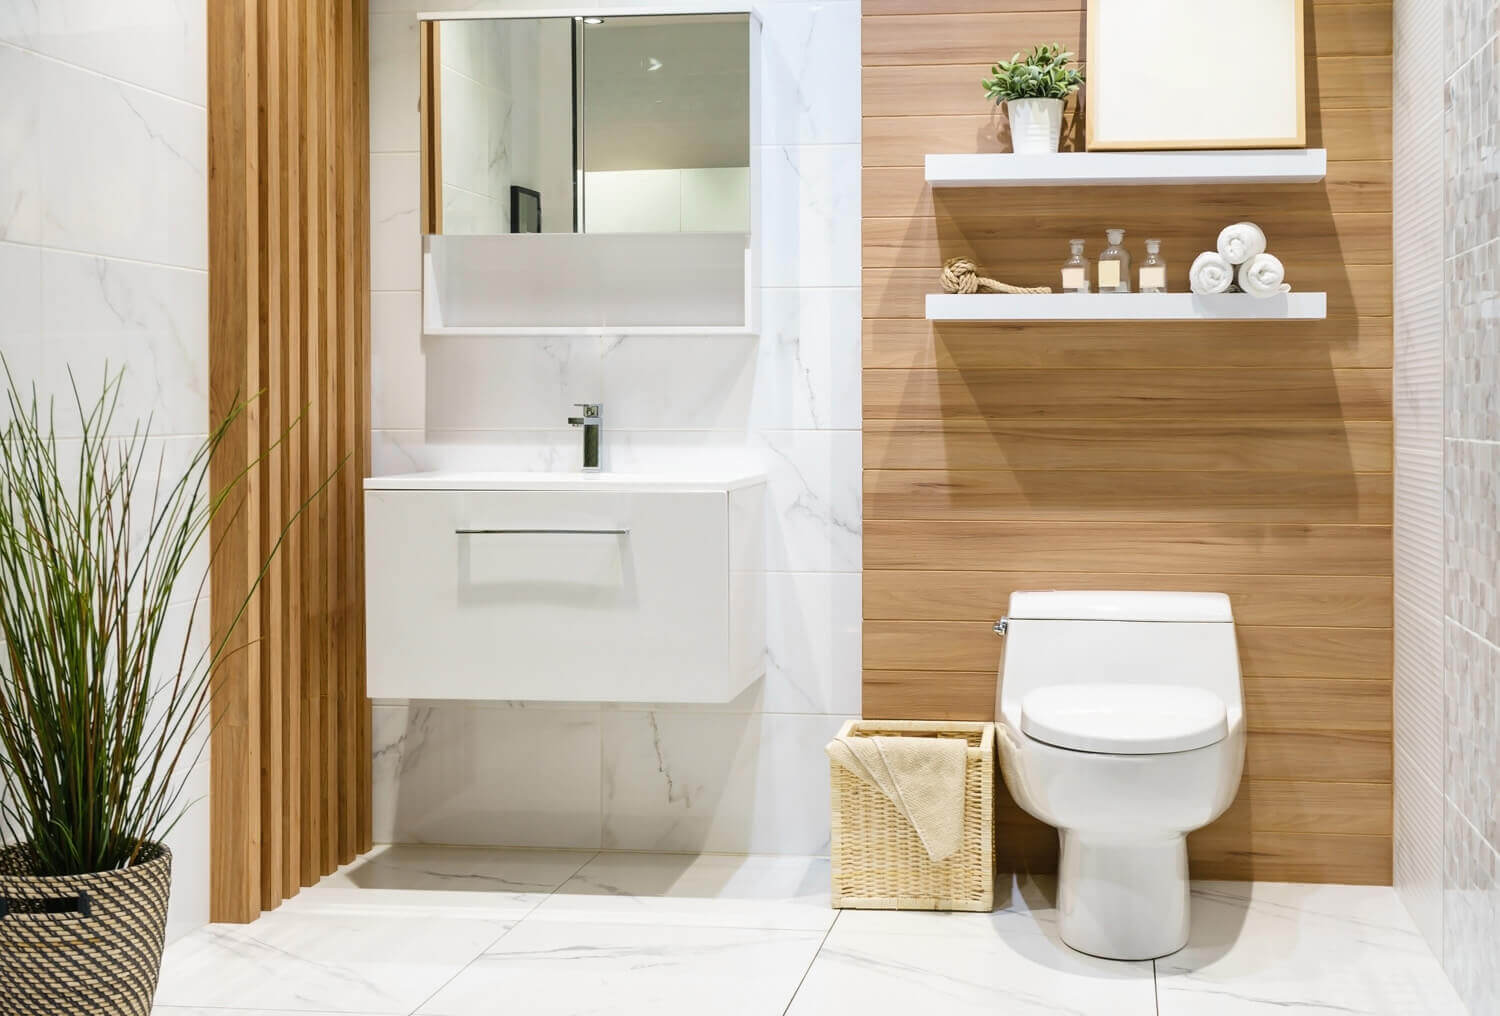 Plumbing Fixtures Installation and Replacement Tomball & North Houston